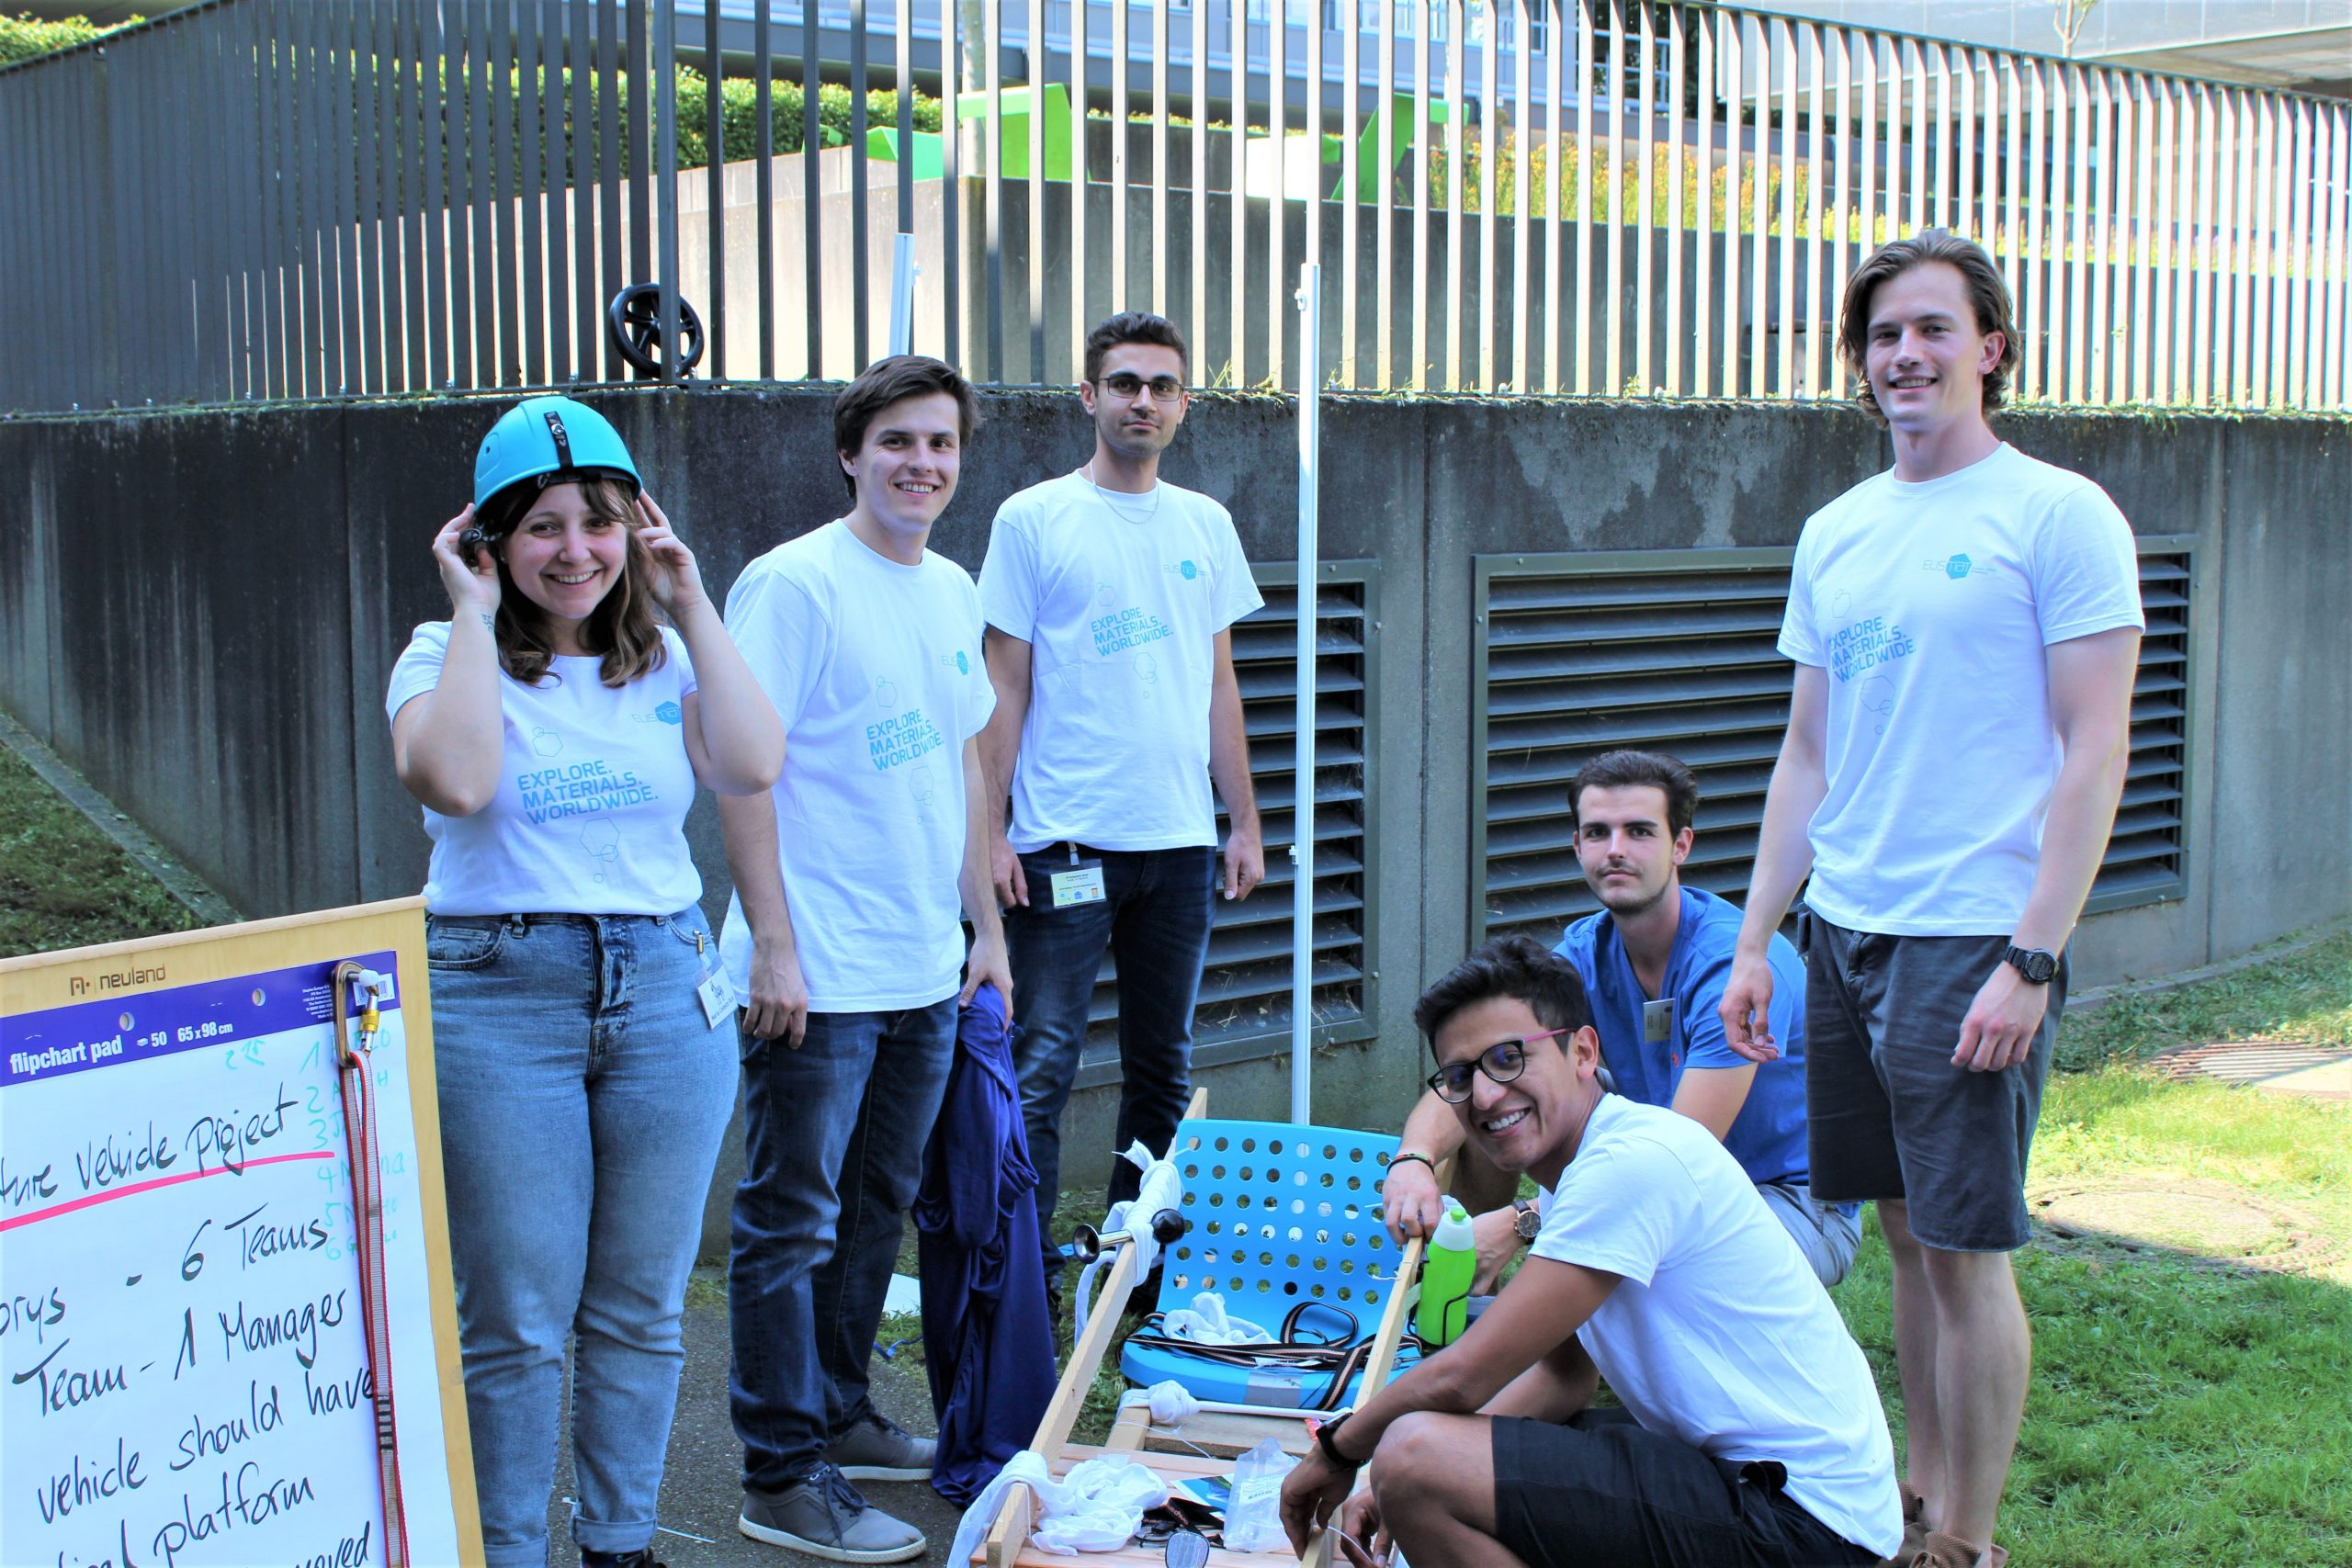 Participants of Integration Week 2019 in AMASE Master Programme working in team and building a racing car.